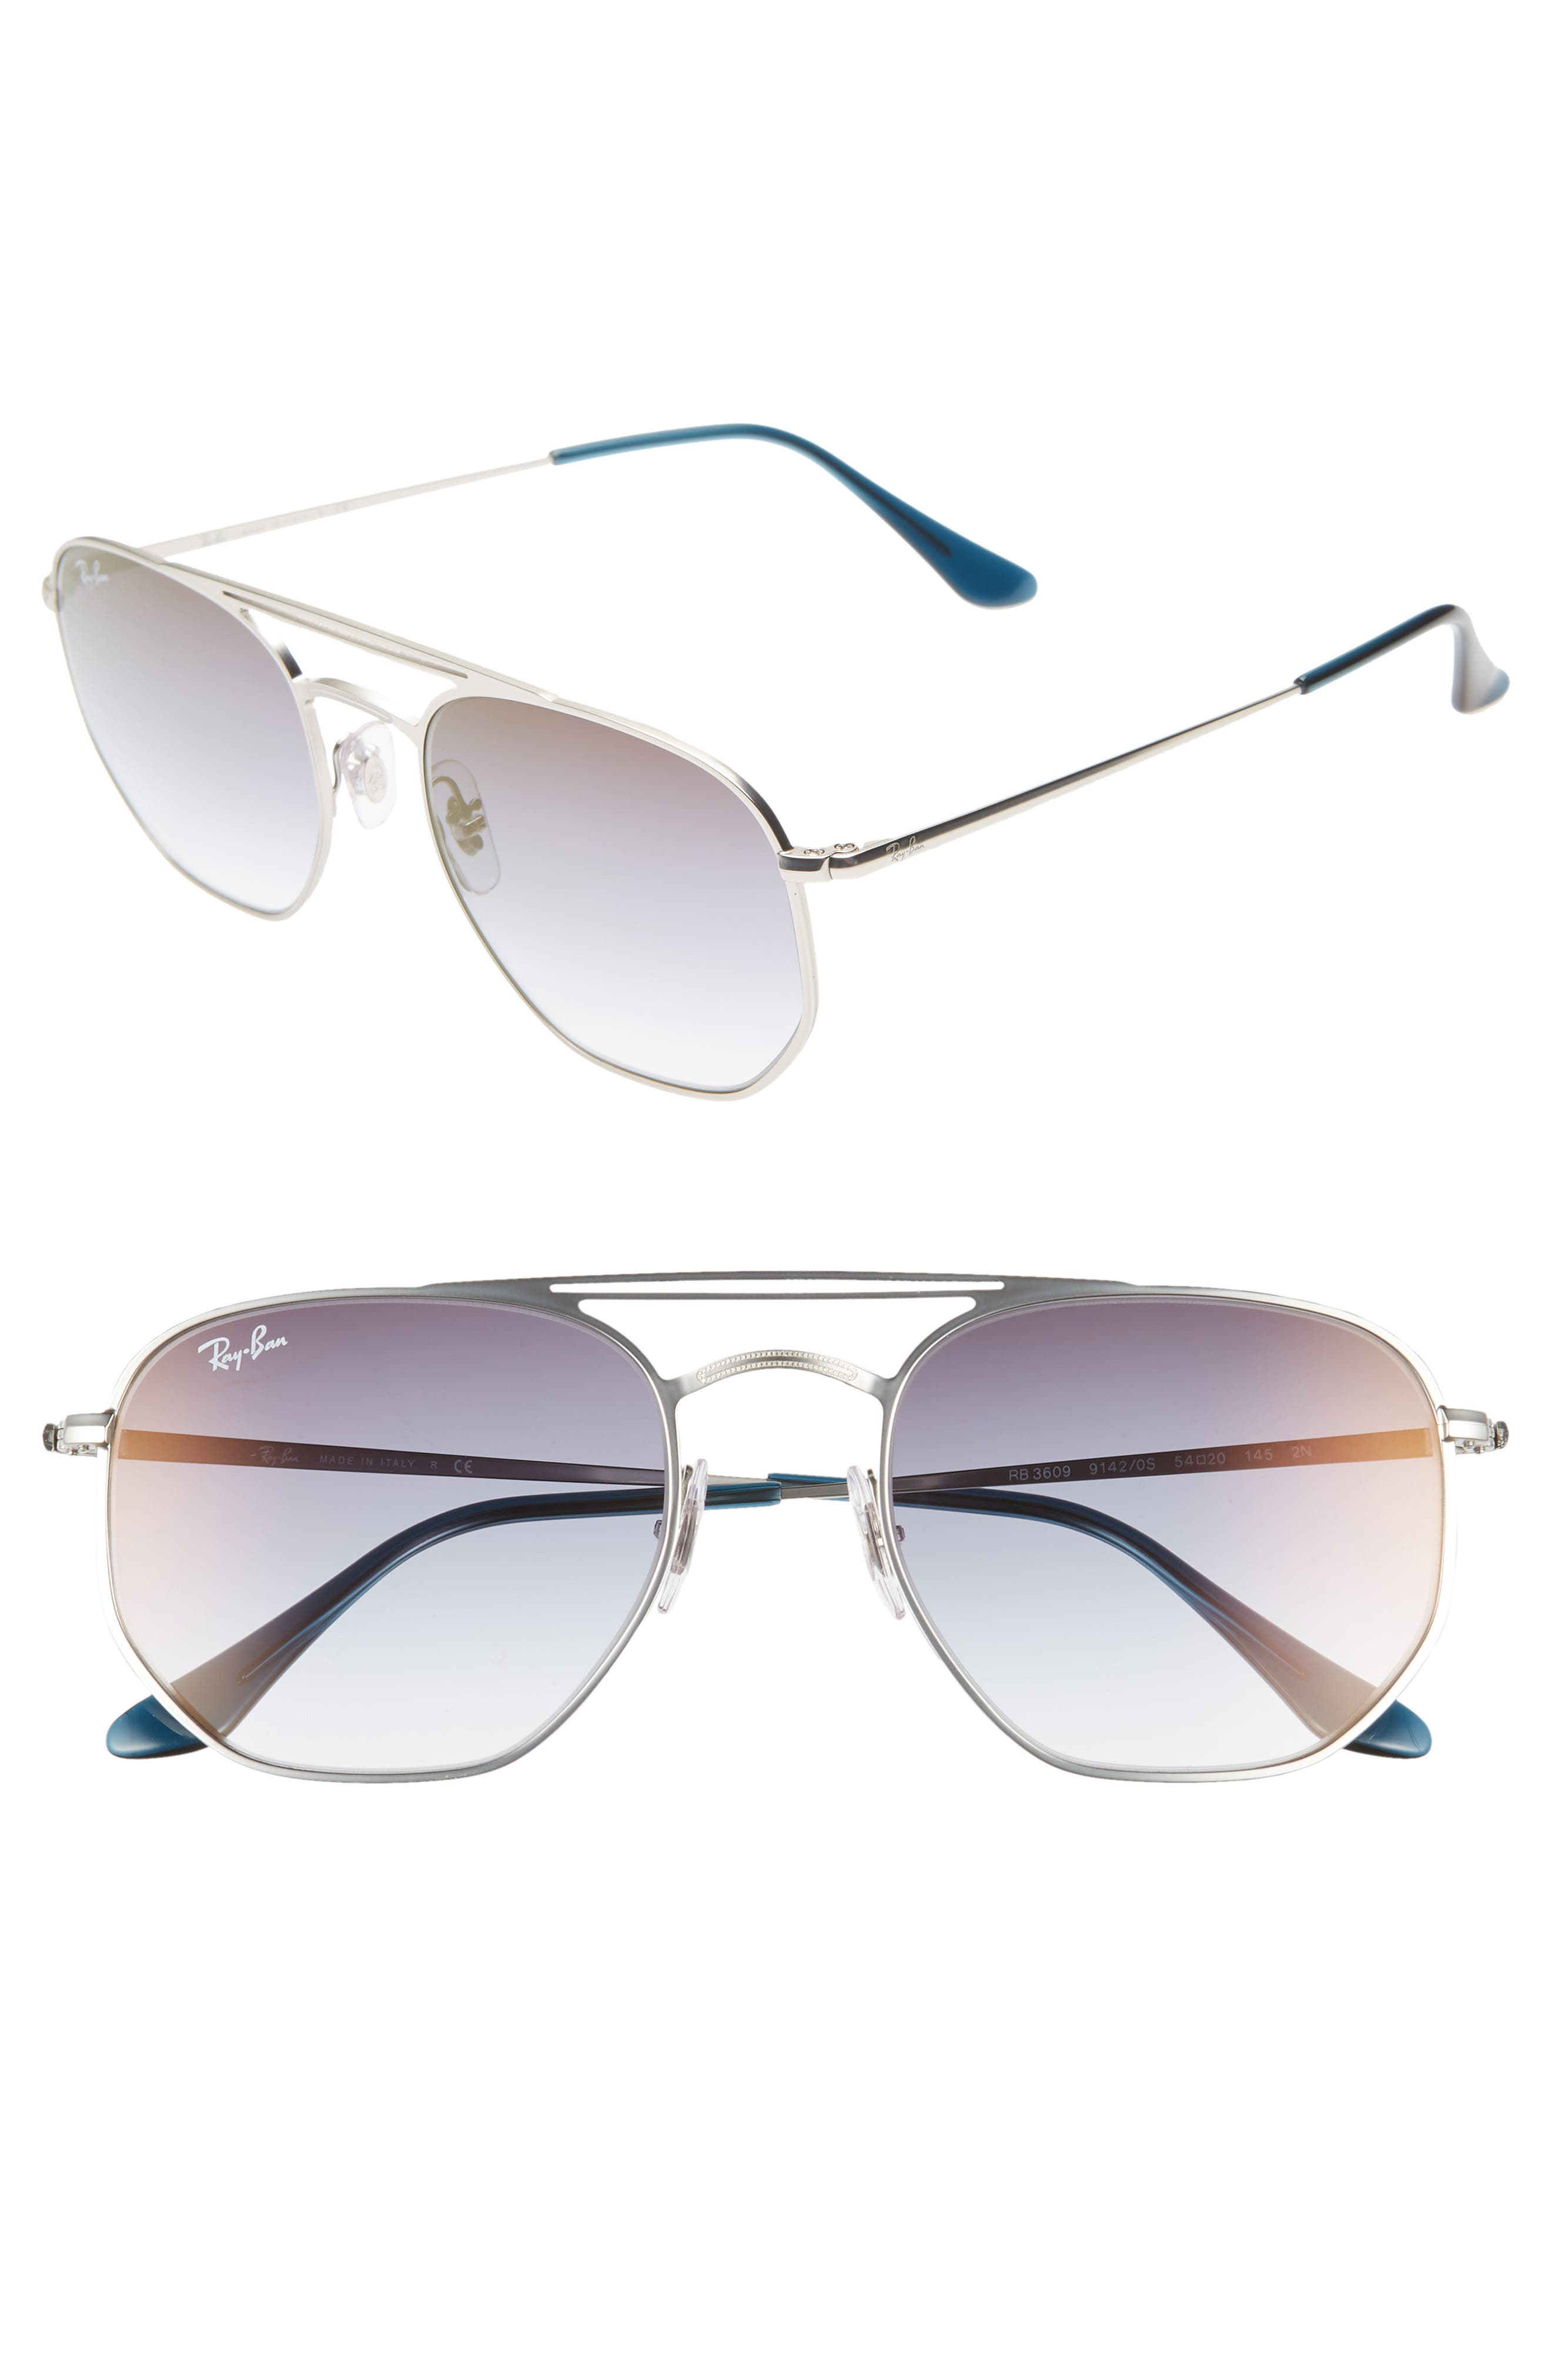 Navigator 54mm Double Bridge Sunglasses,                             Main thumbnail 1, color,                             TRANSPARENT BLUE